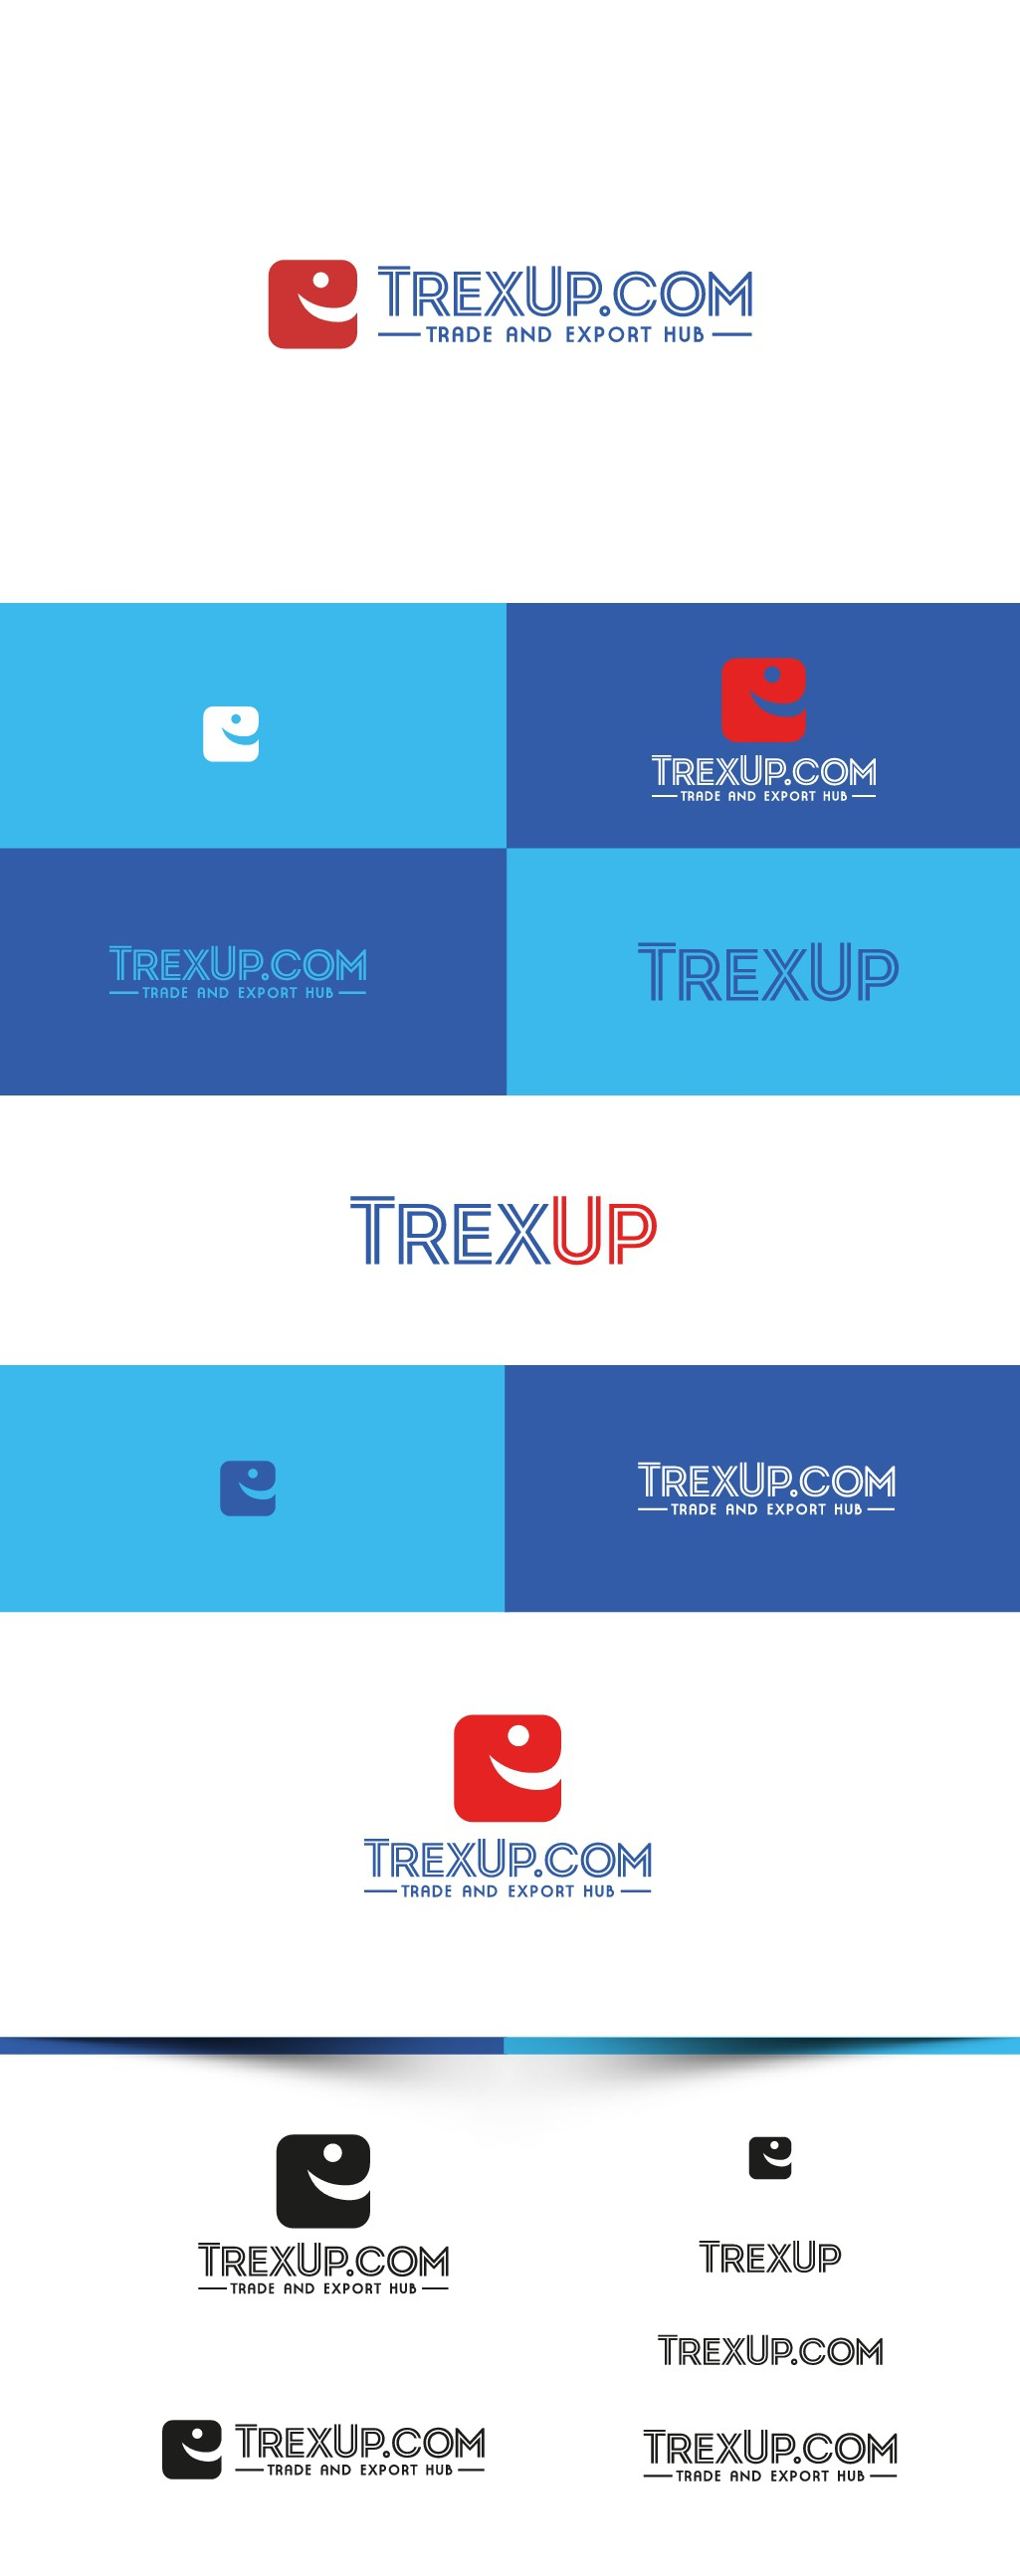 alibaba of Africa - Trade and Export Hub - TrexUp.com